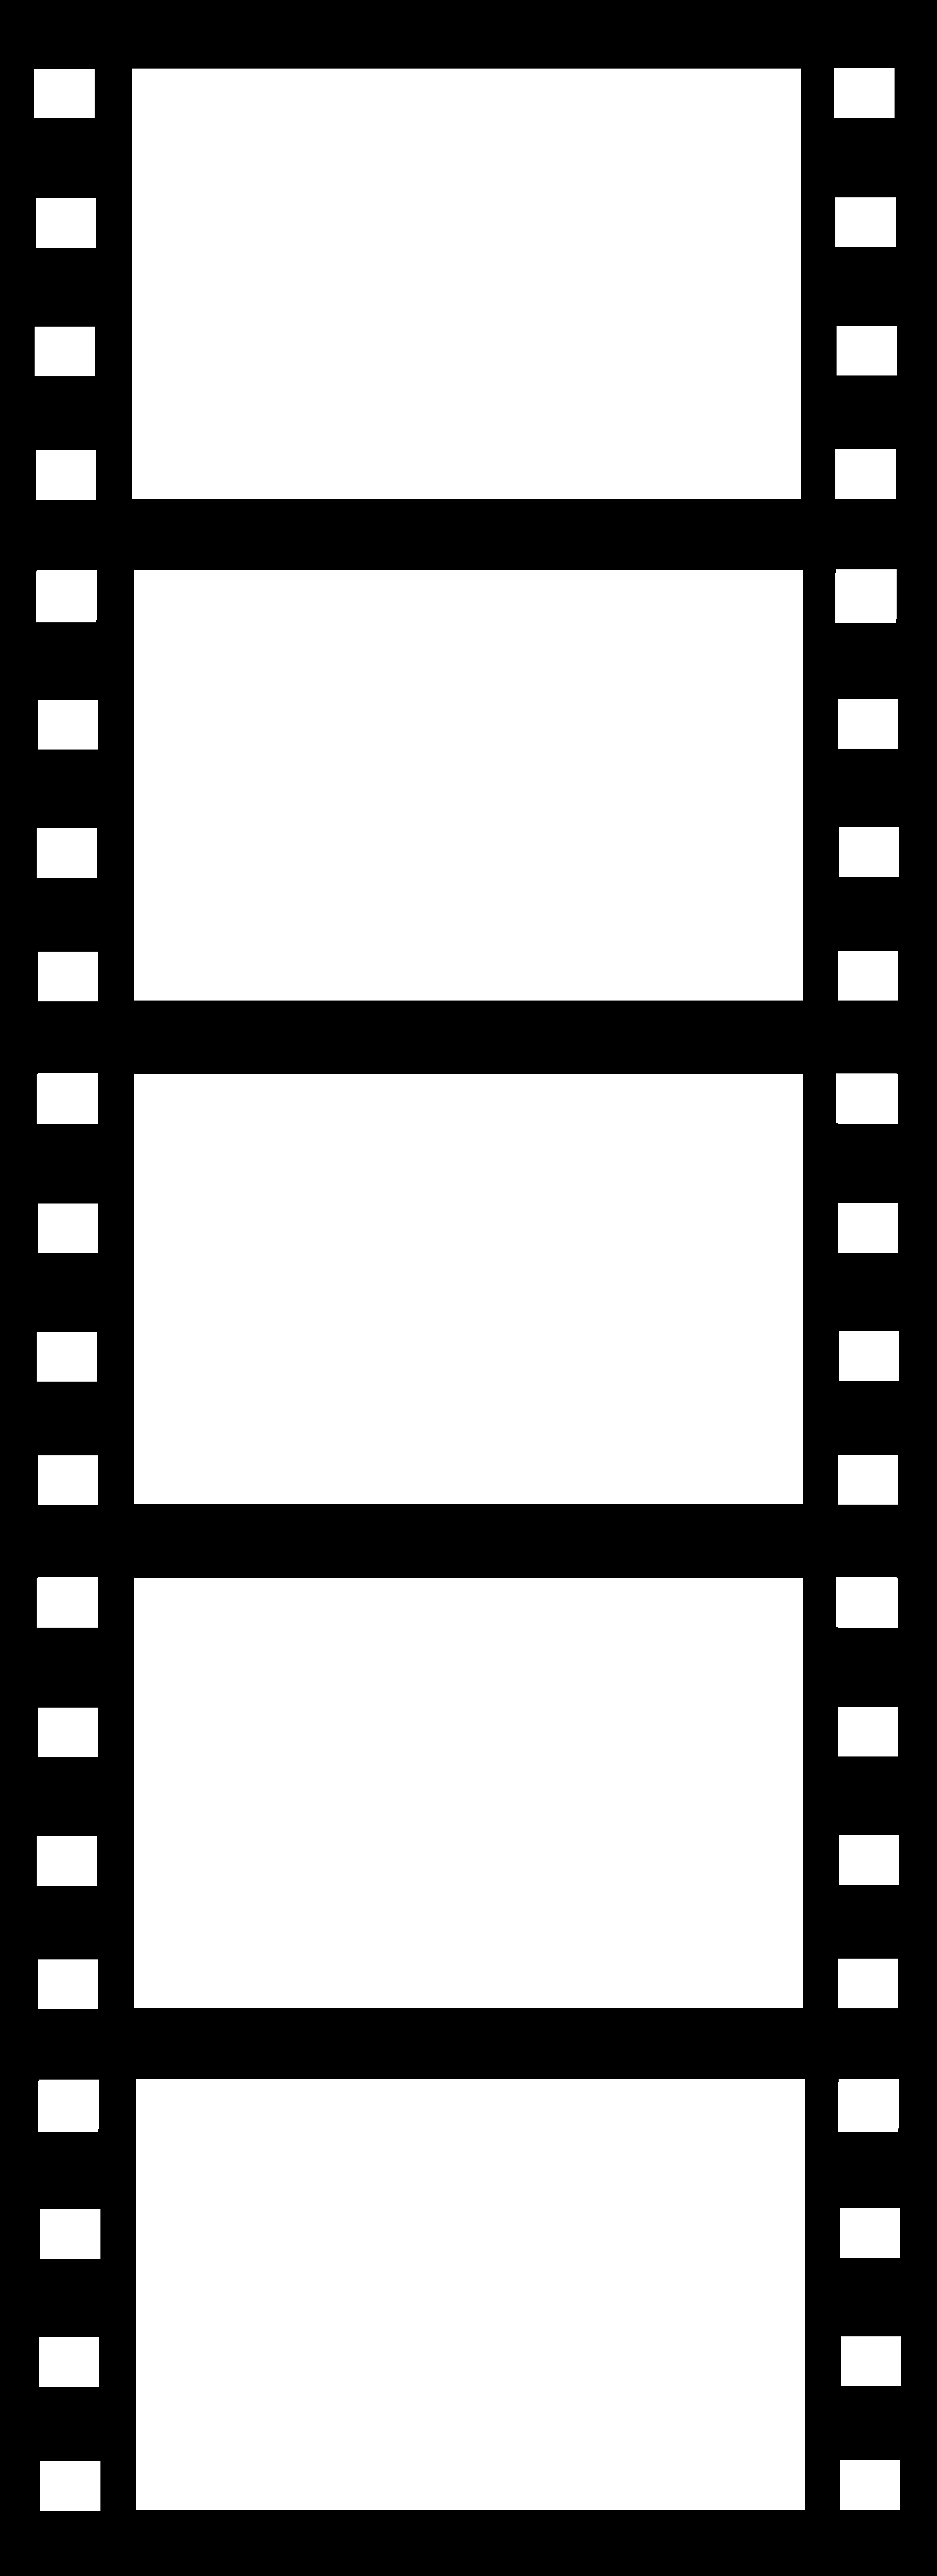 Film strip pano pinterest films clip art and scrapbook for Film strip picture template